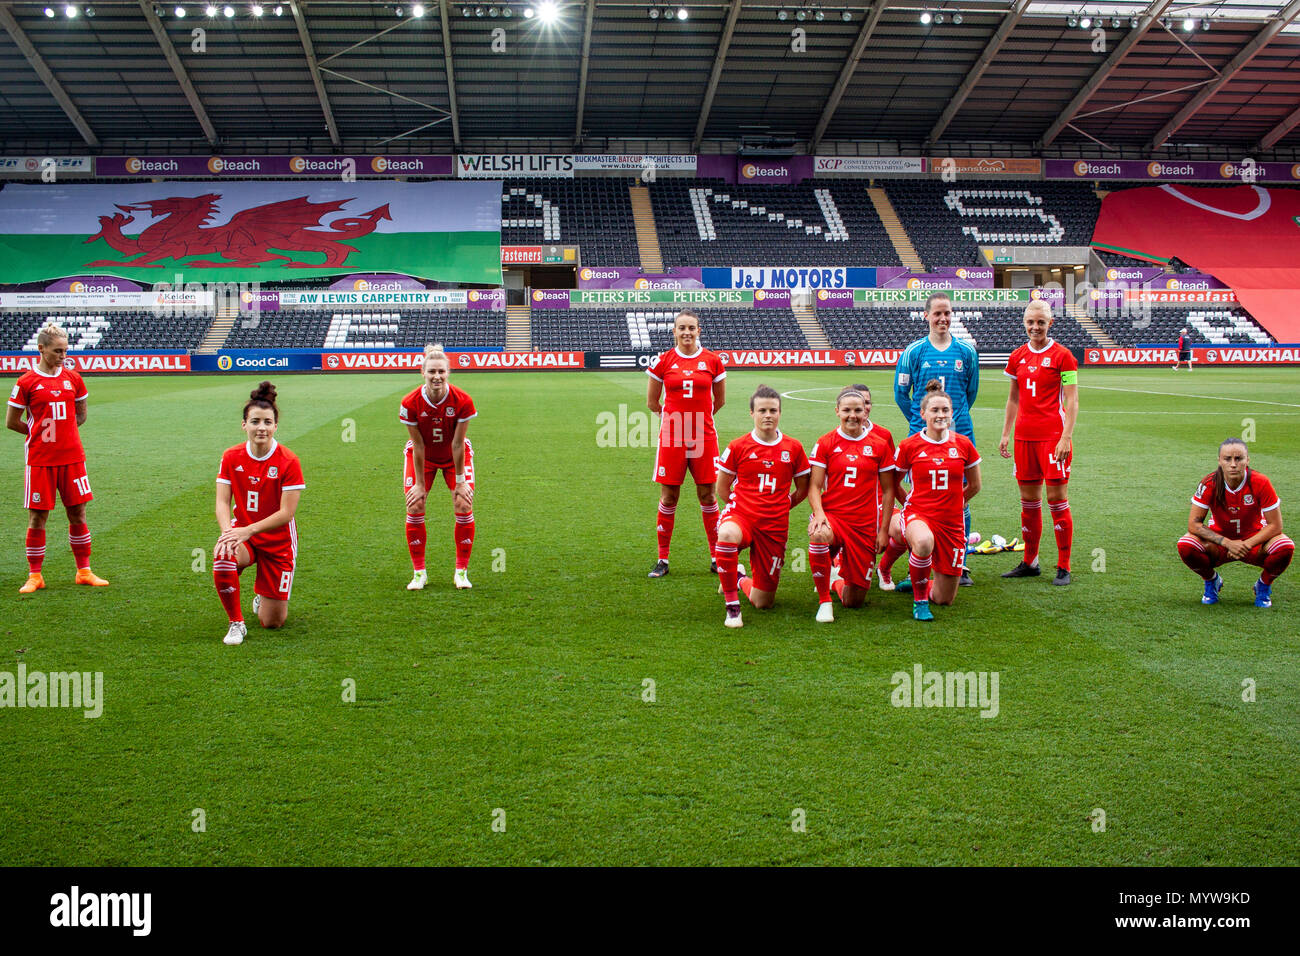 Swansea, Wales, UK. 7th June, 2018. Wales team. Wales face Bosnia-Herzegovina at the Liberty Stadium. Lewis Mitchell/Alamy Live News. - Stock Image